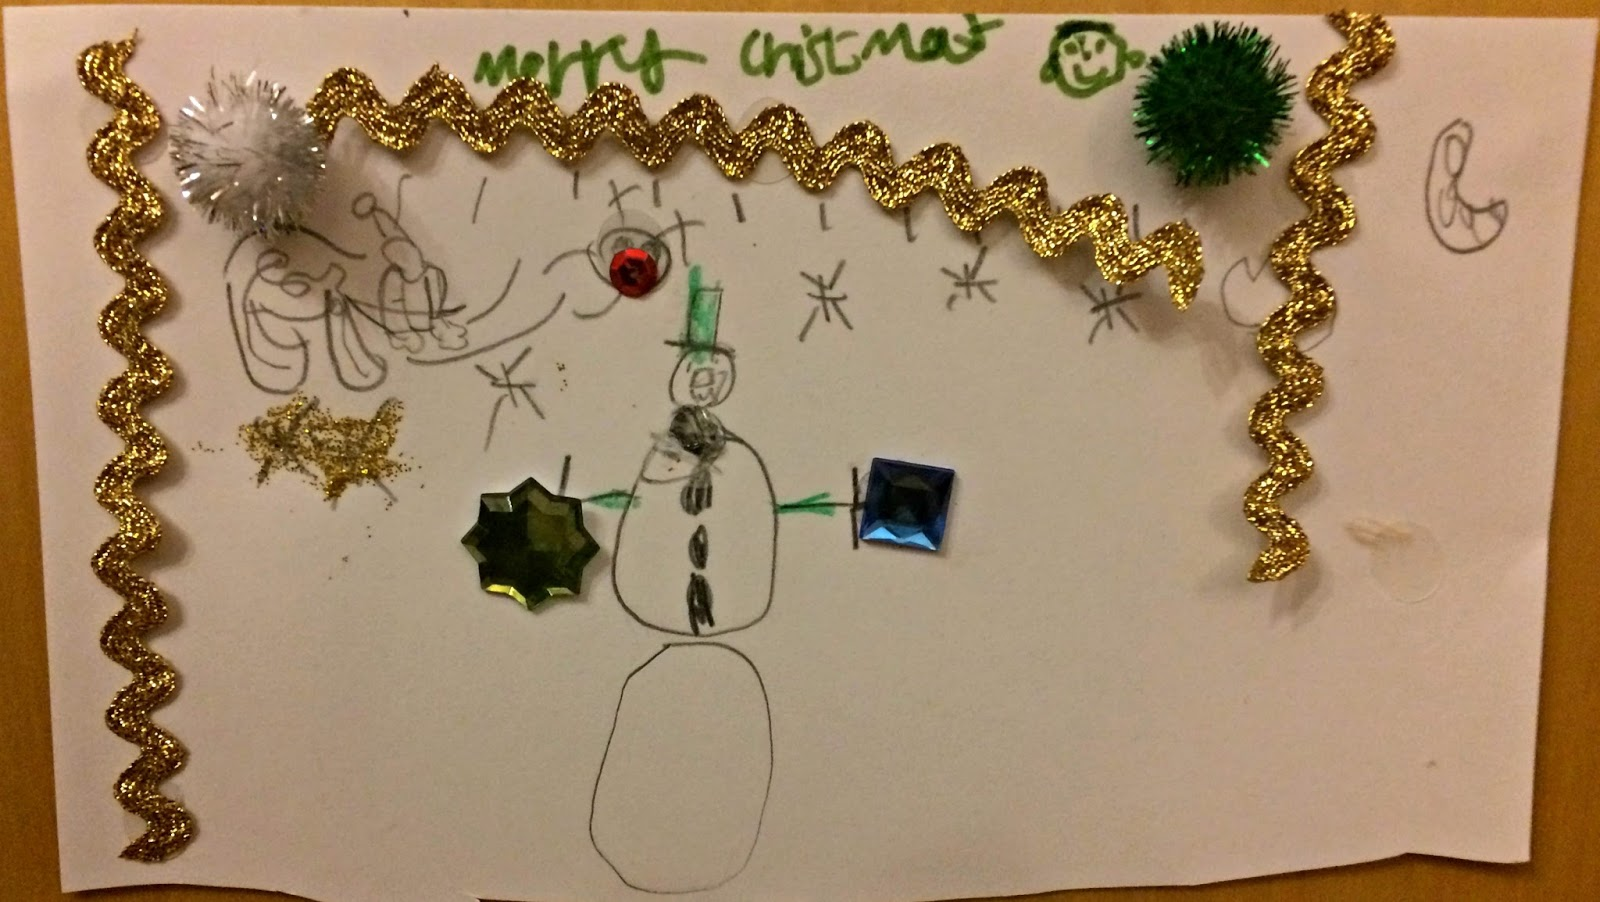 Ieuan's Christmas card